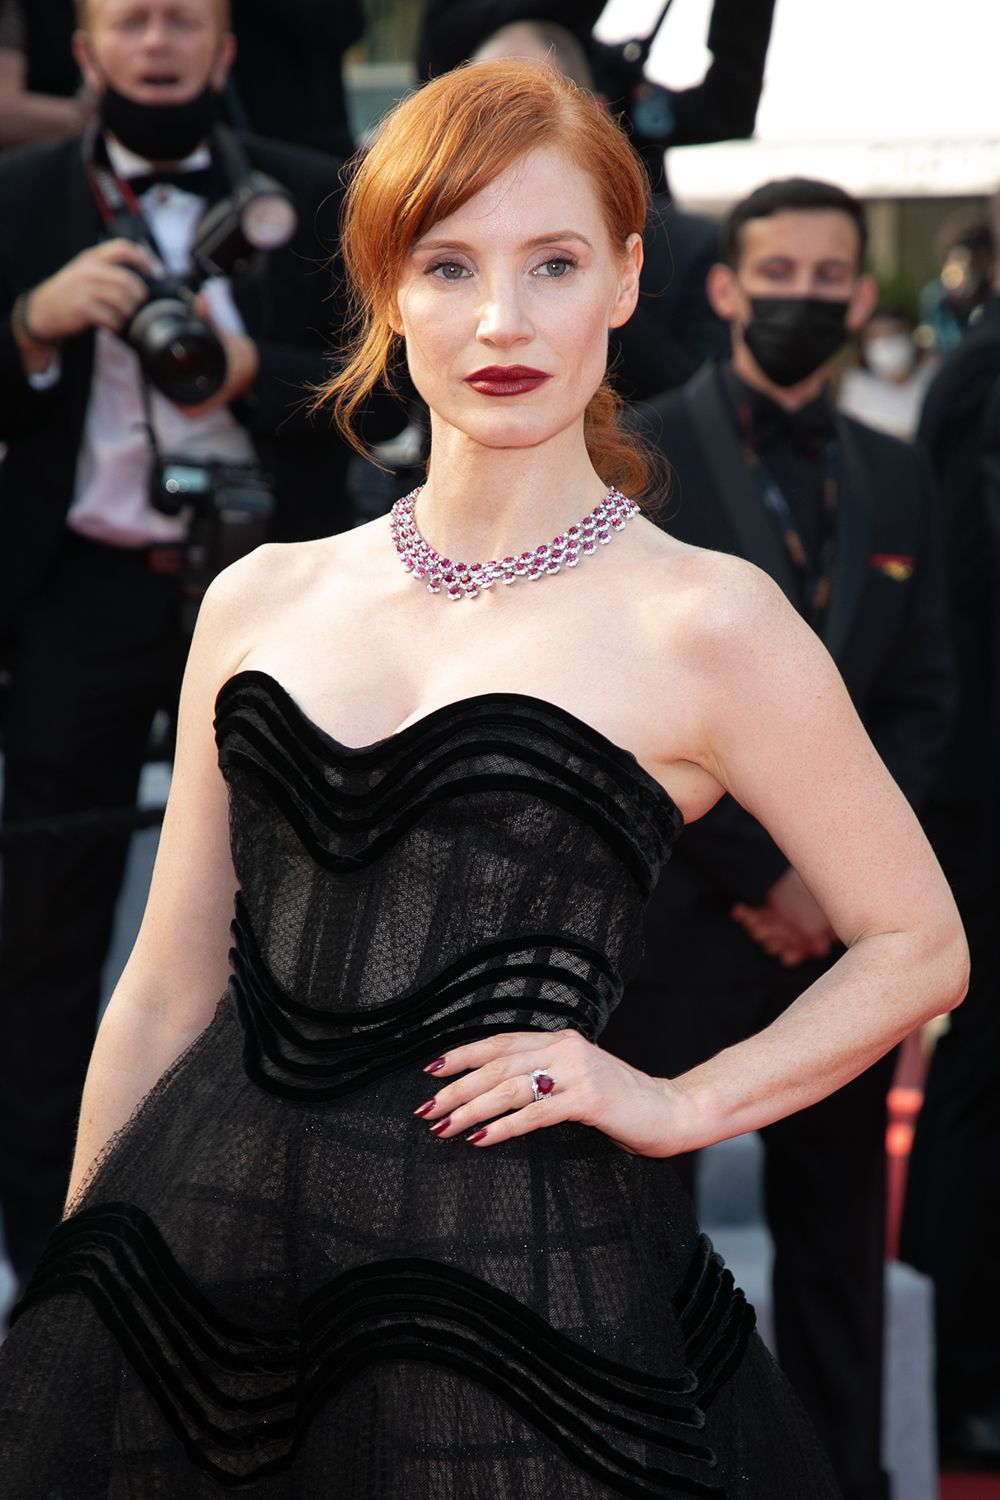 These Are Hands Down the Best A-List Looks at Cannes Film Festival